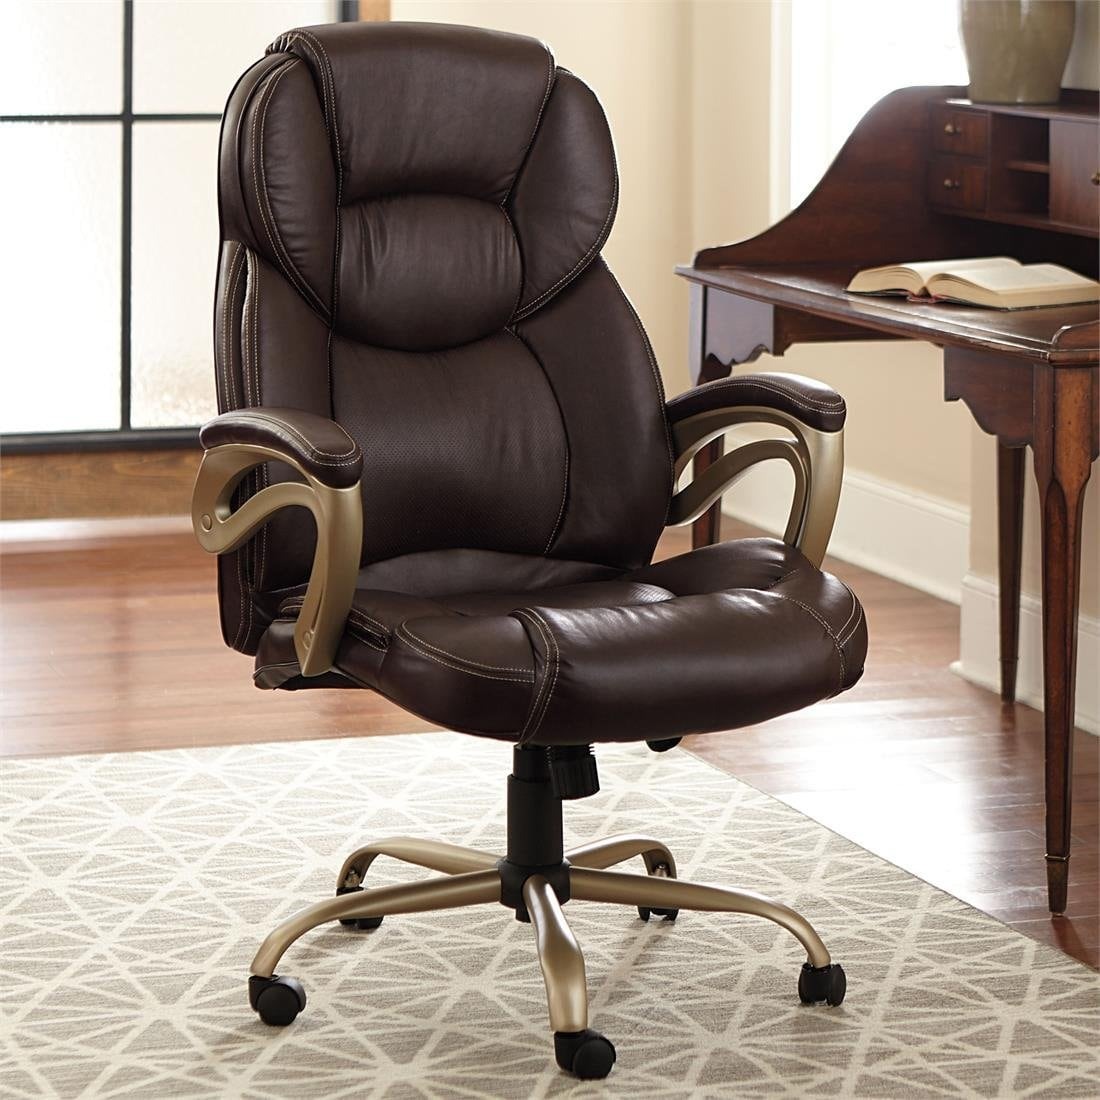 office chair neck support attachment staples skate dark chairs for big guys furniture